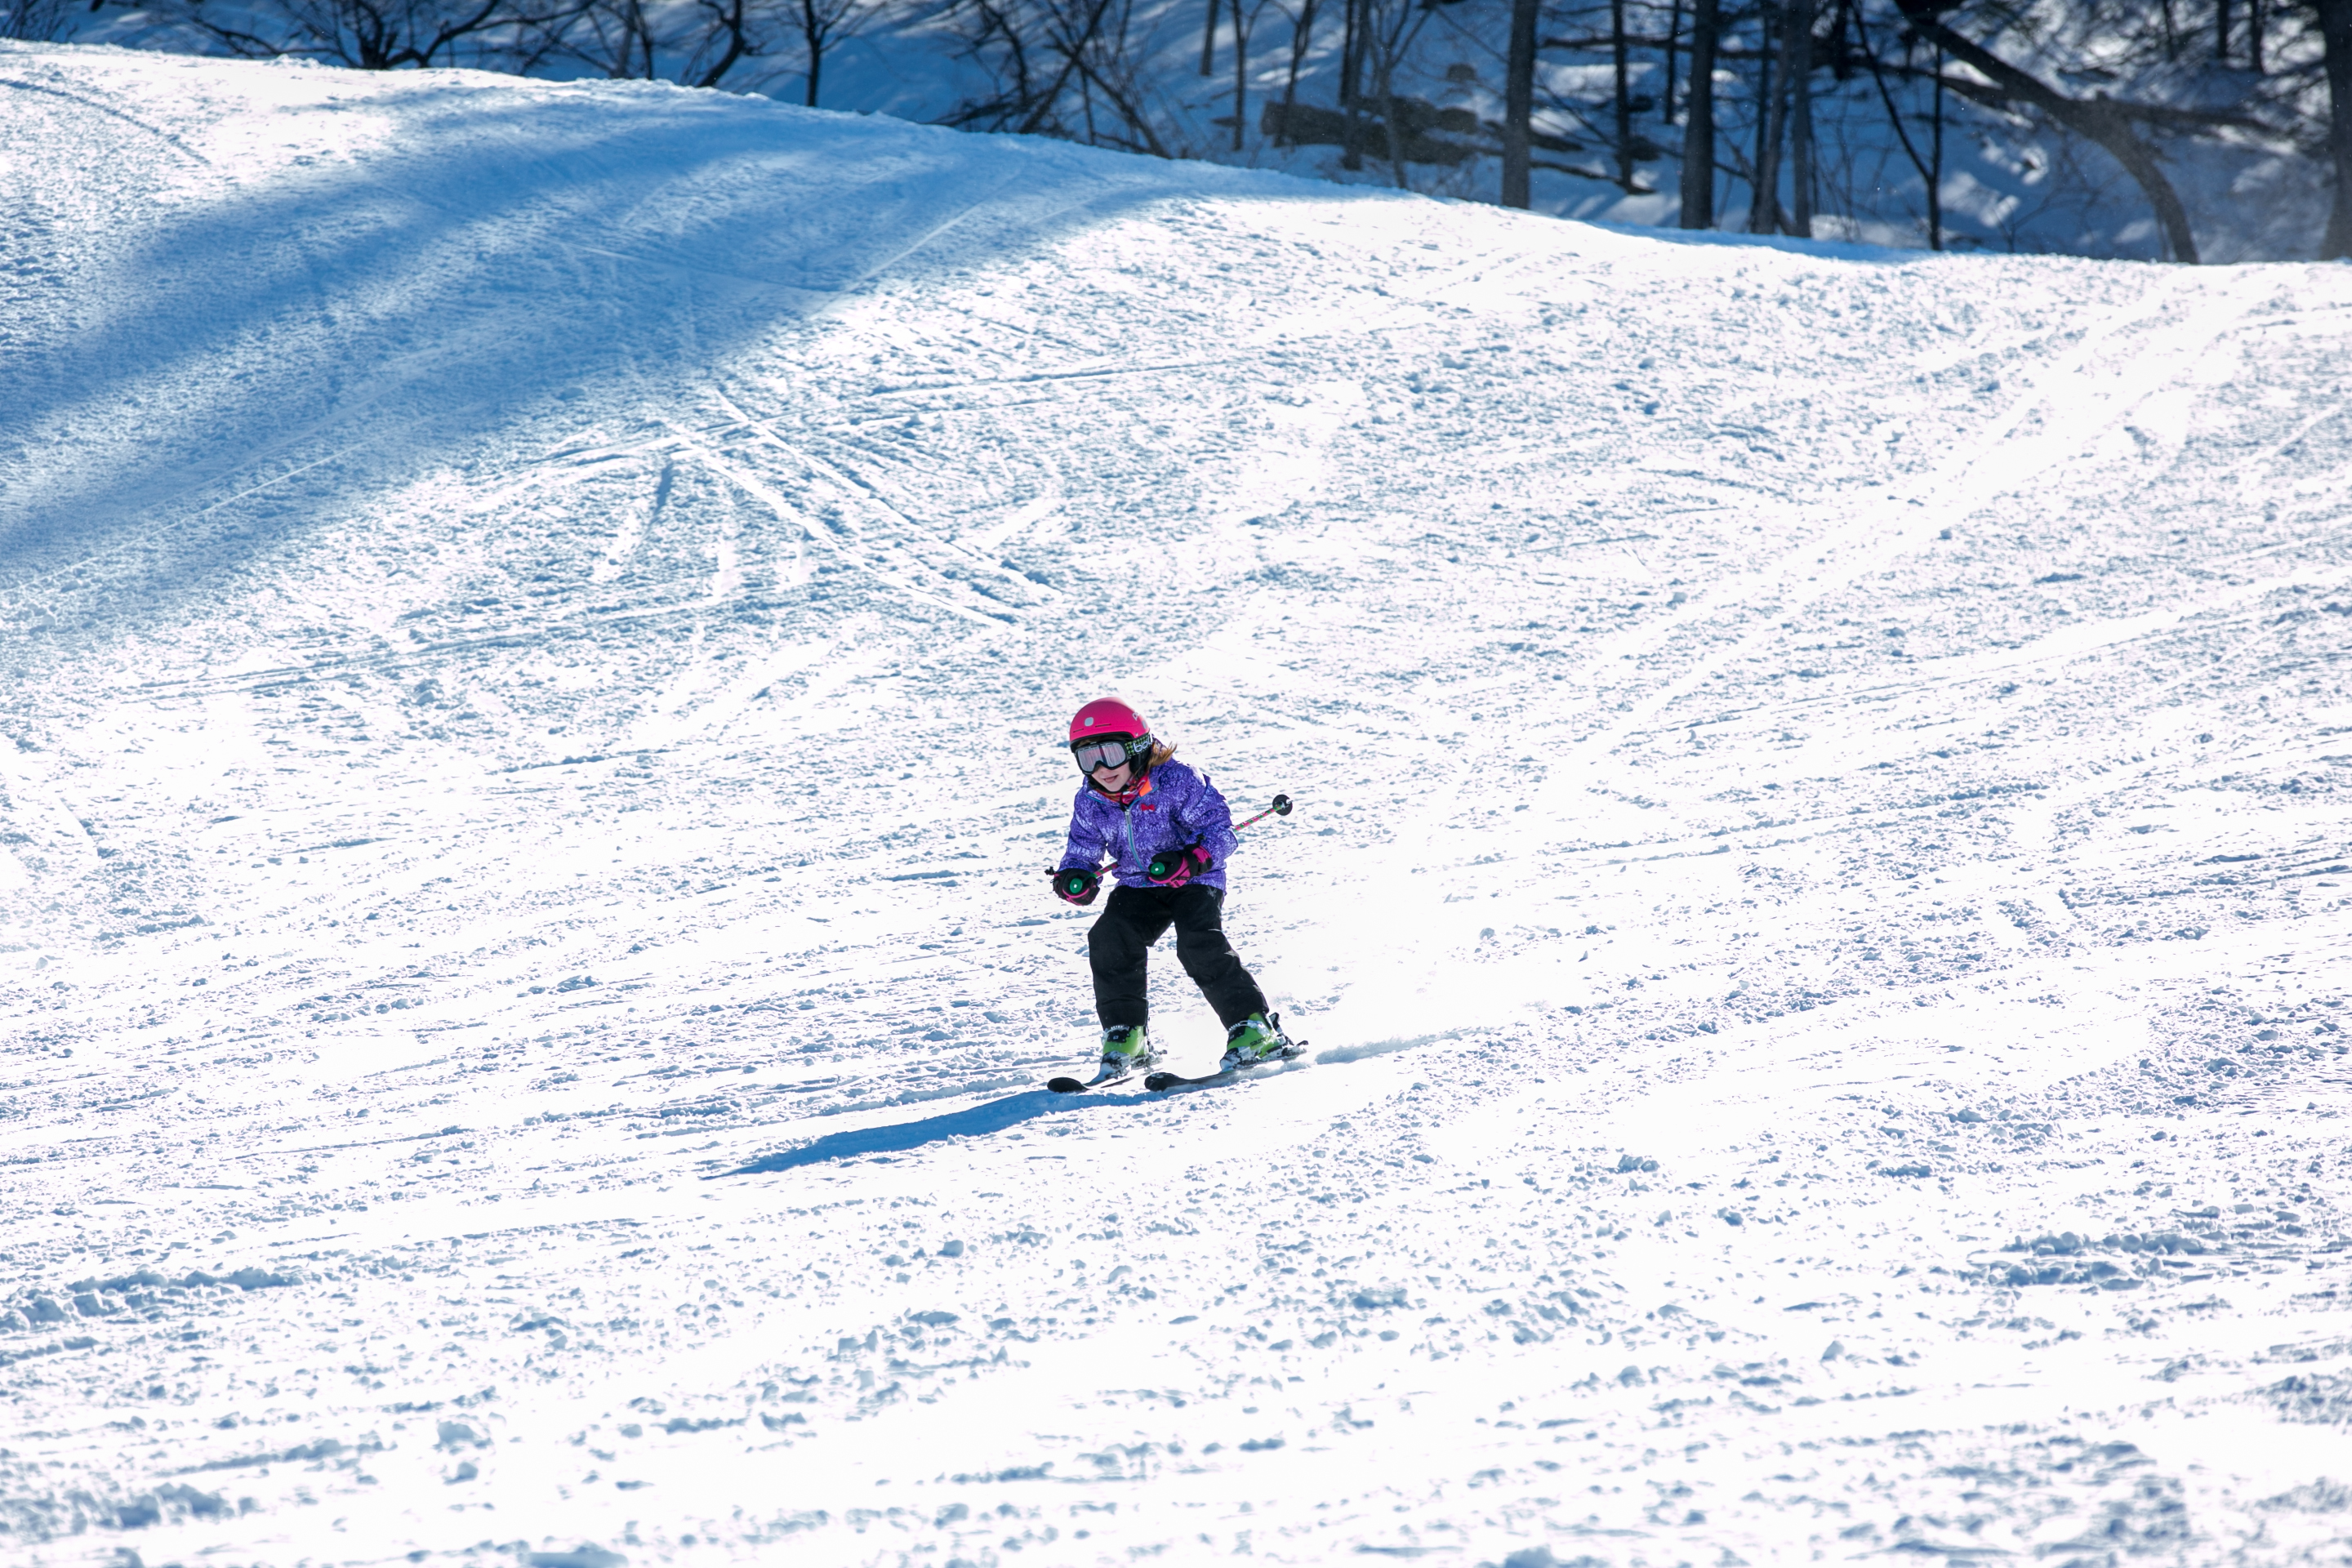 poconos skiing | learn about trails, resorts & conditions